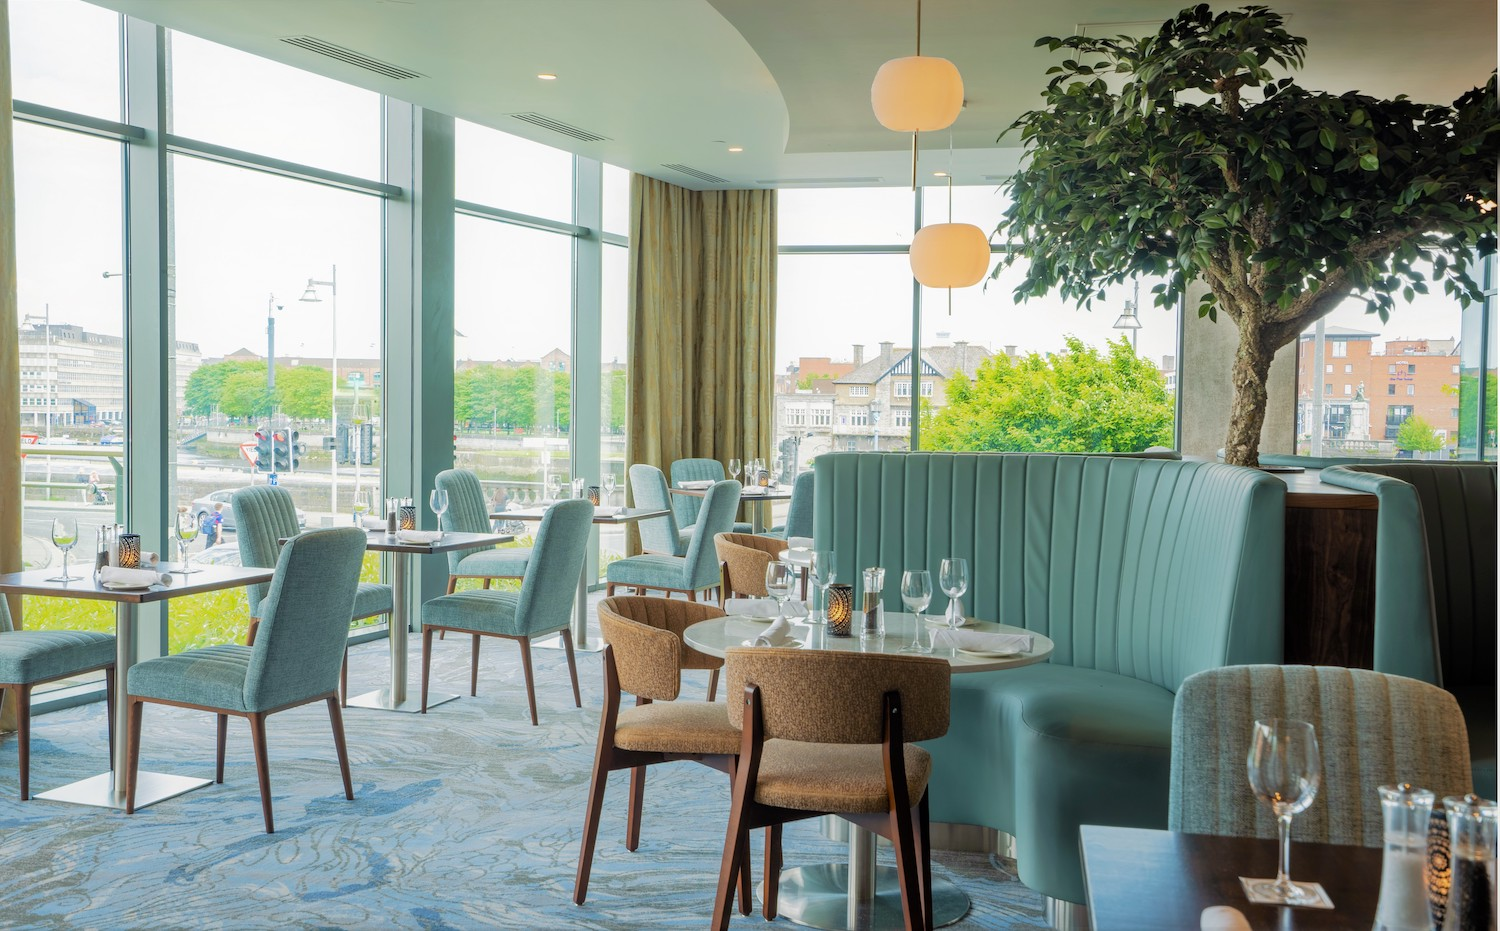 Limerick strand River Rar and Restuarant has been upgraded with a €400k revamp with its aesthetic influenced from the River Shannon.